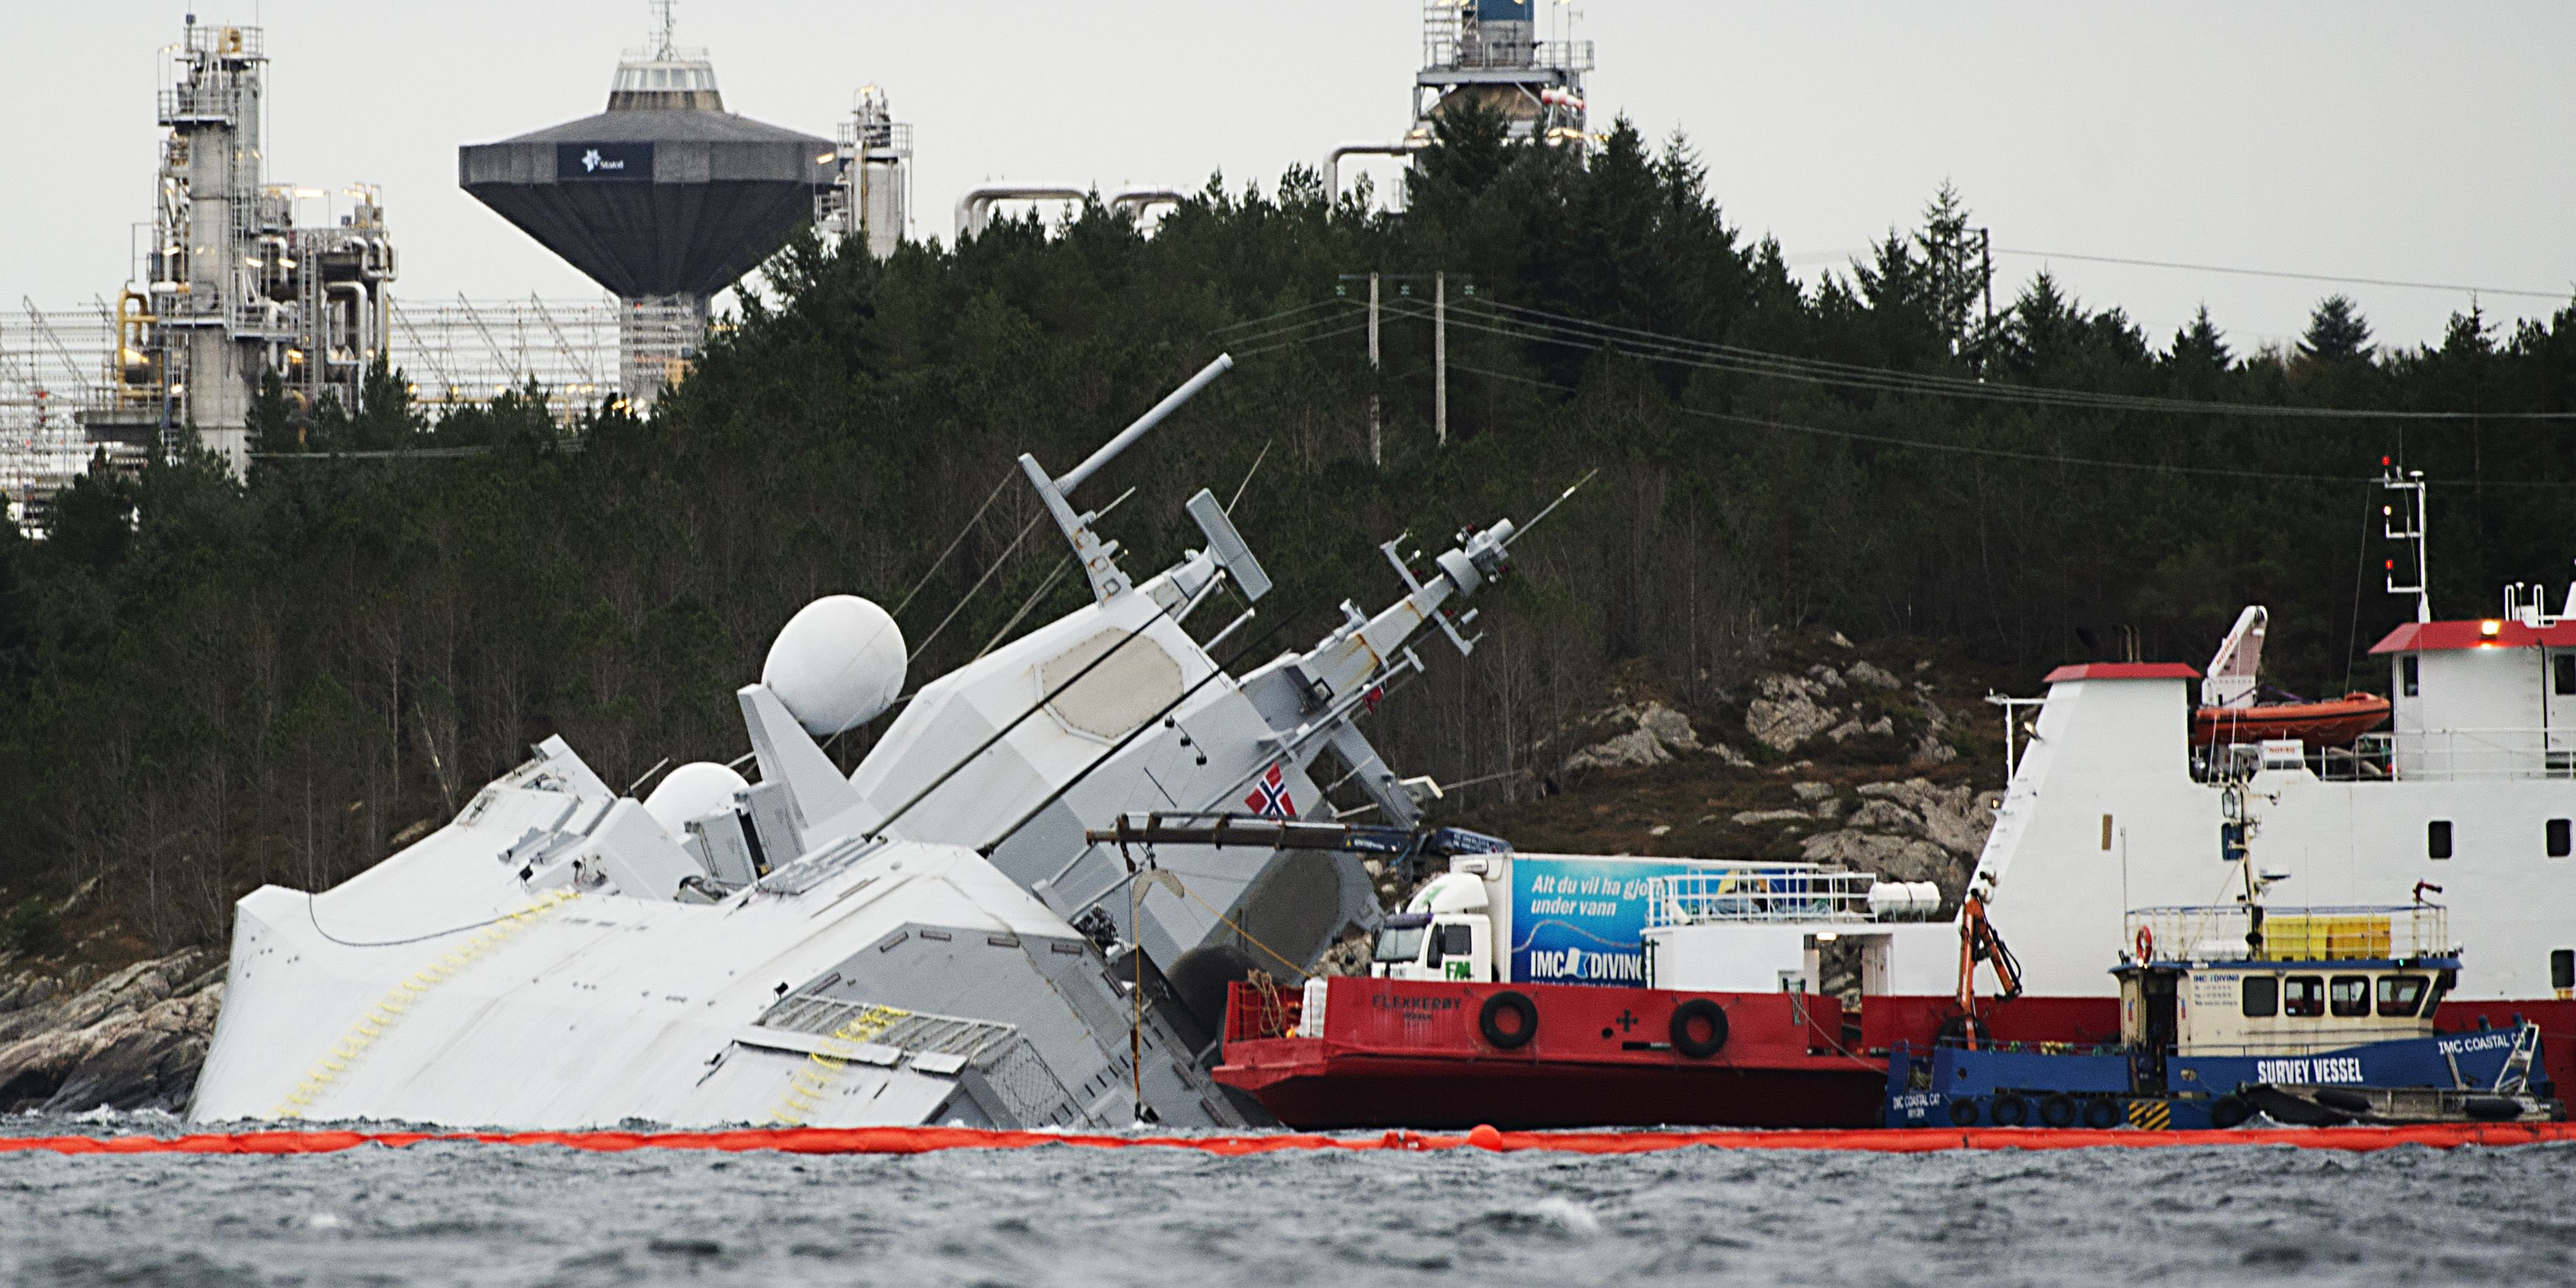 NORWAY-NAVY-ACCIDENT